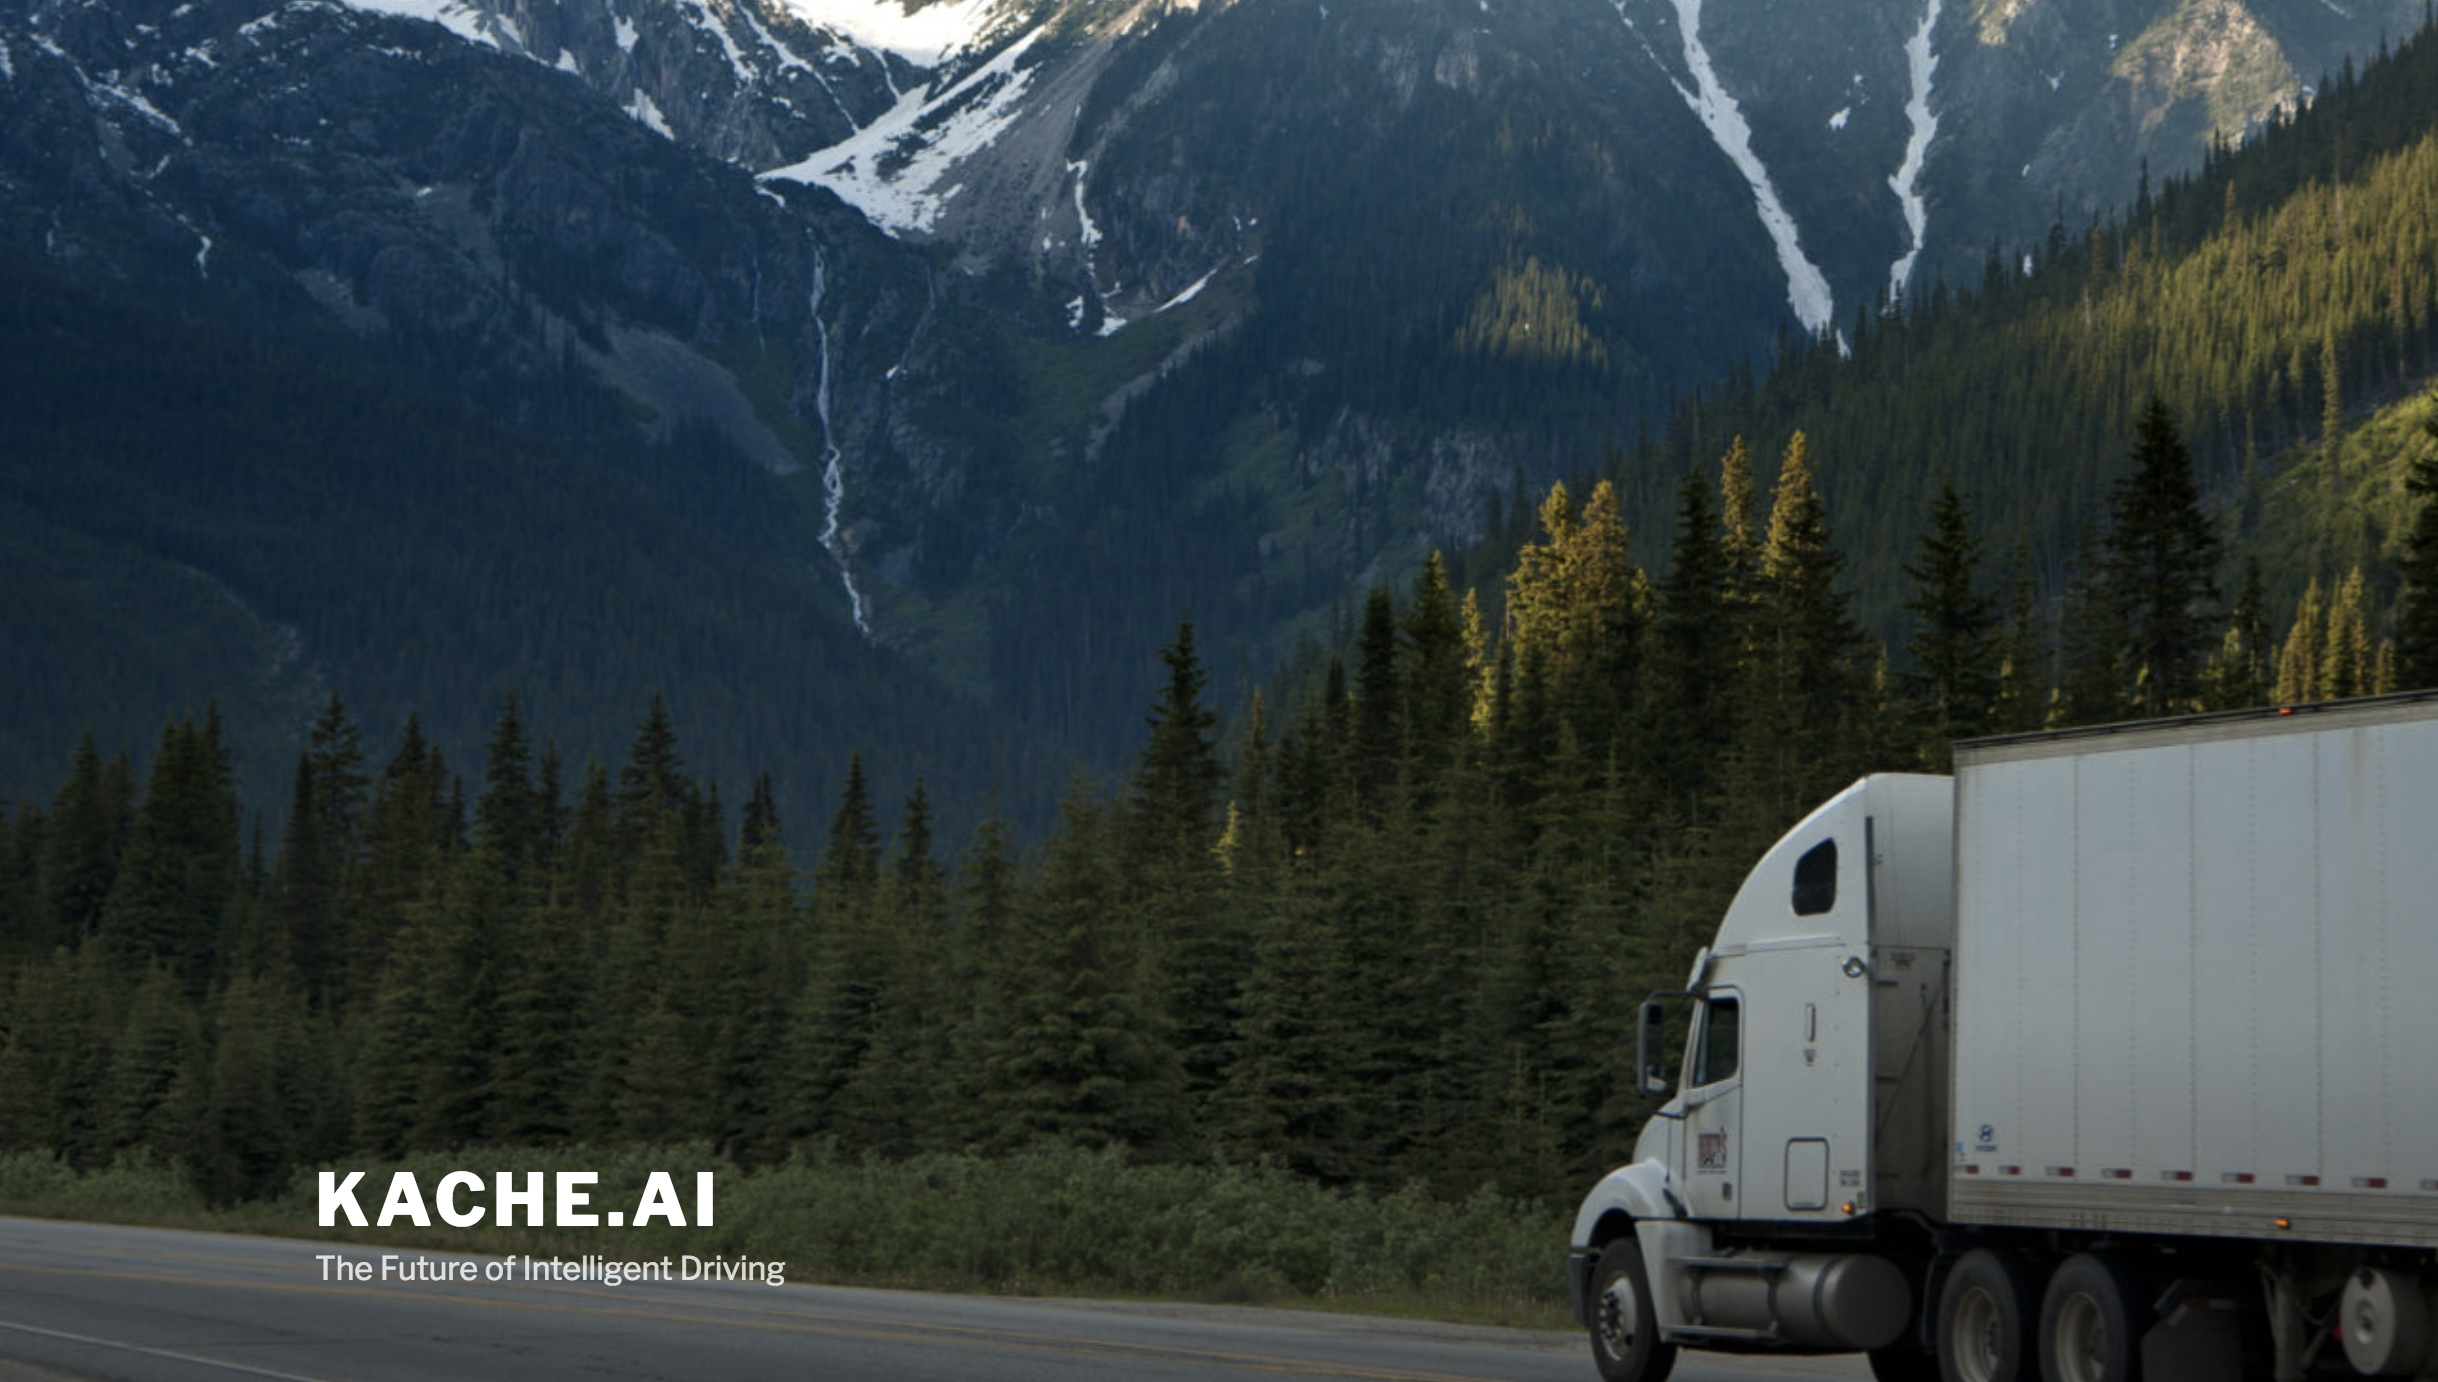 Anthony Levandowski is back with a new self-driving startup, called Kache.ai